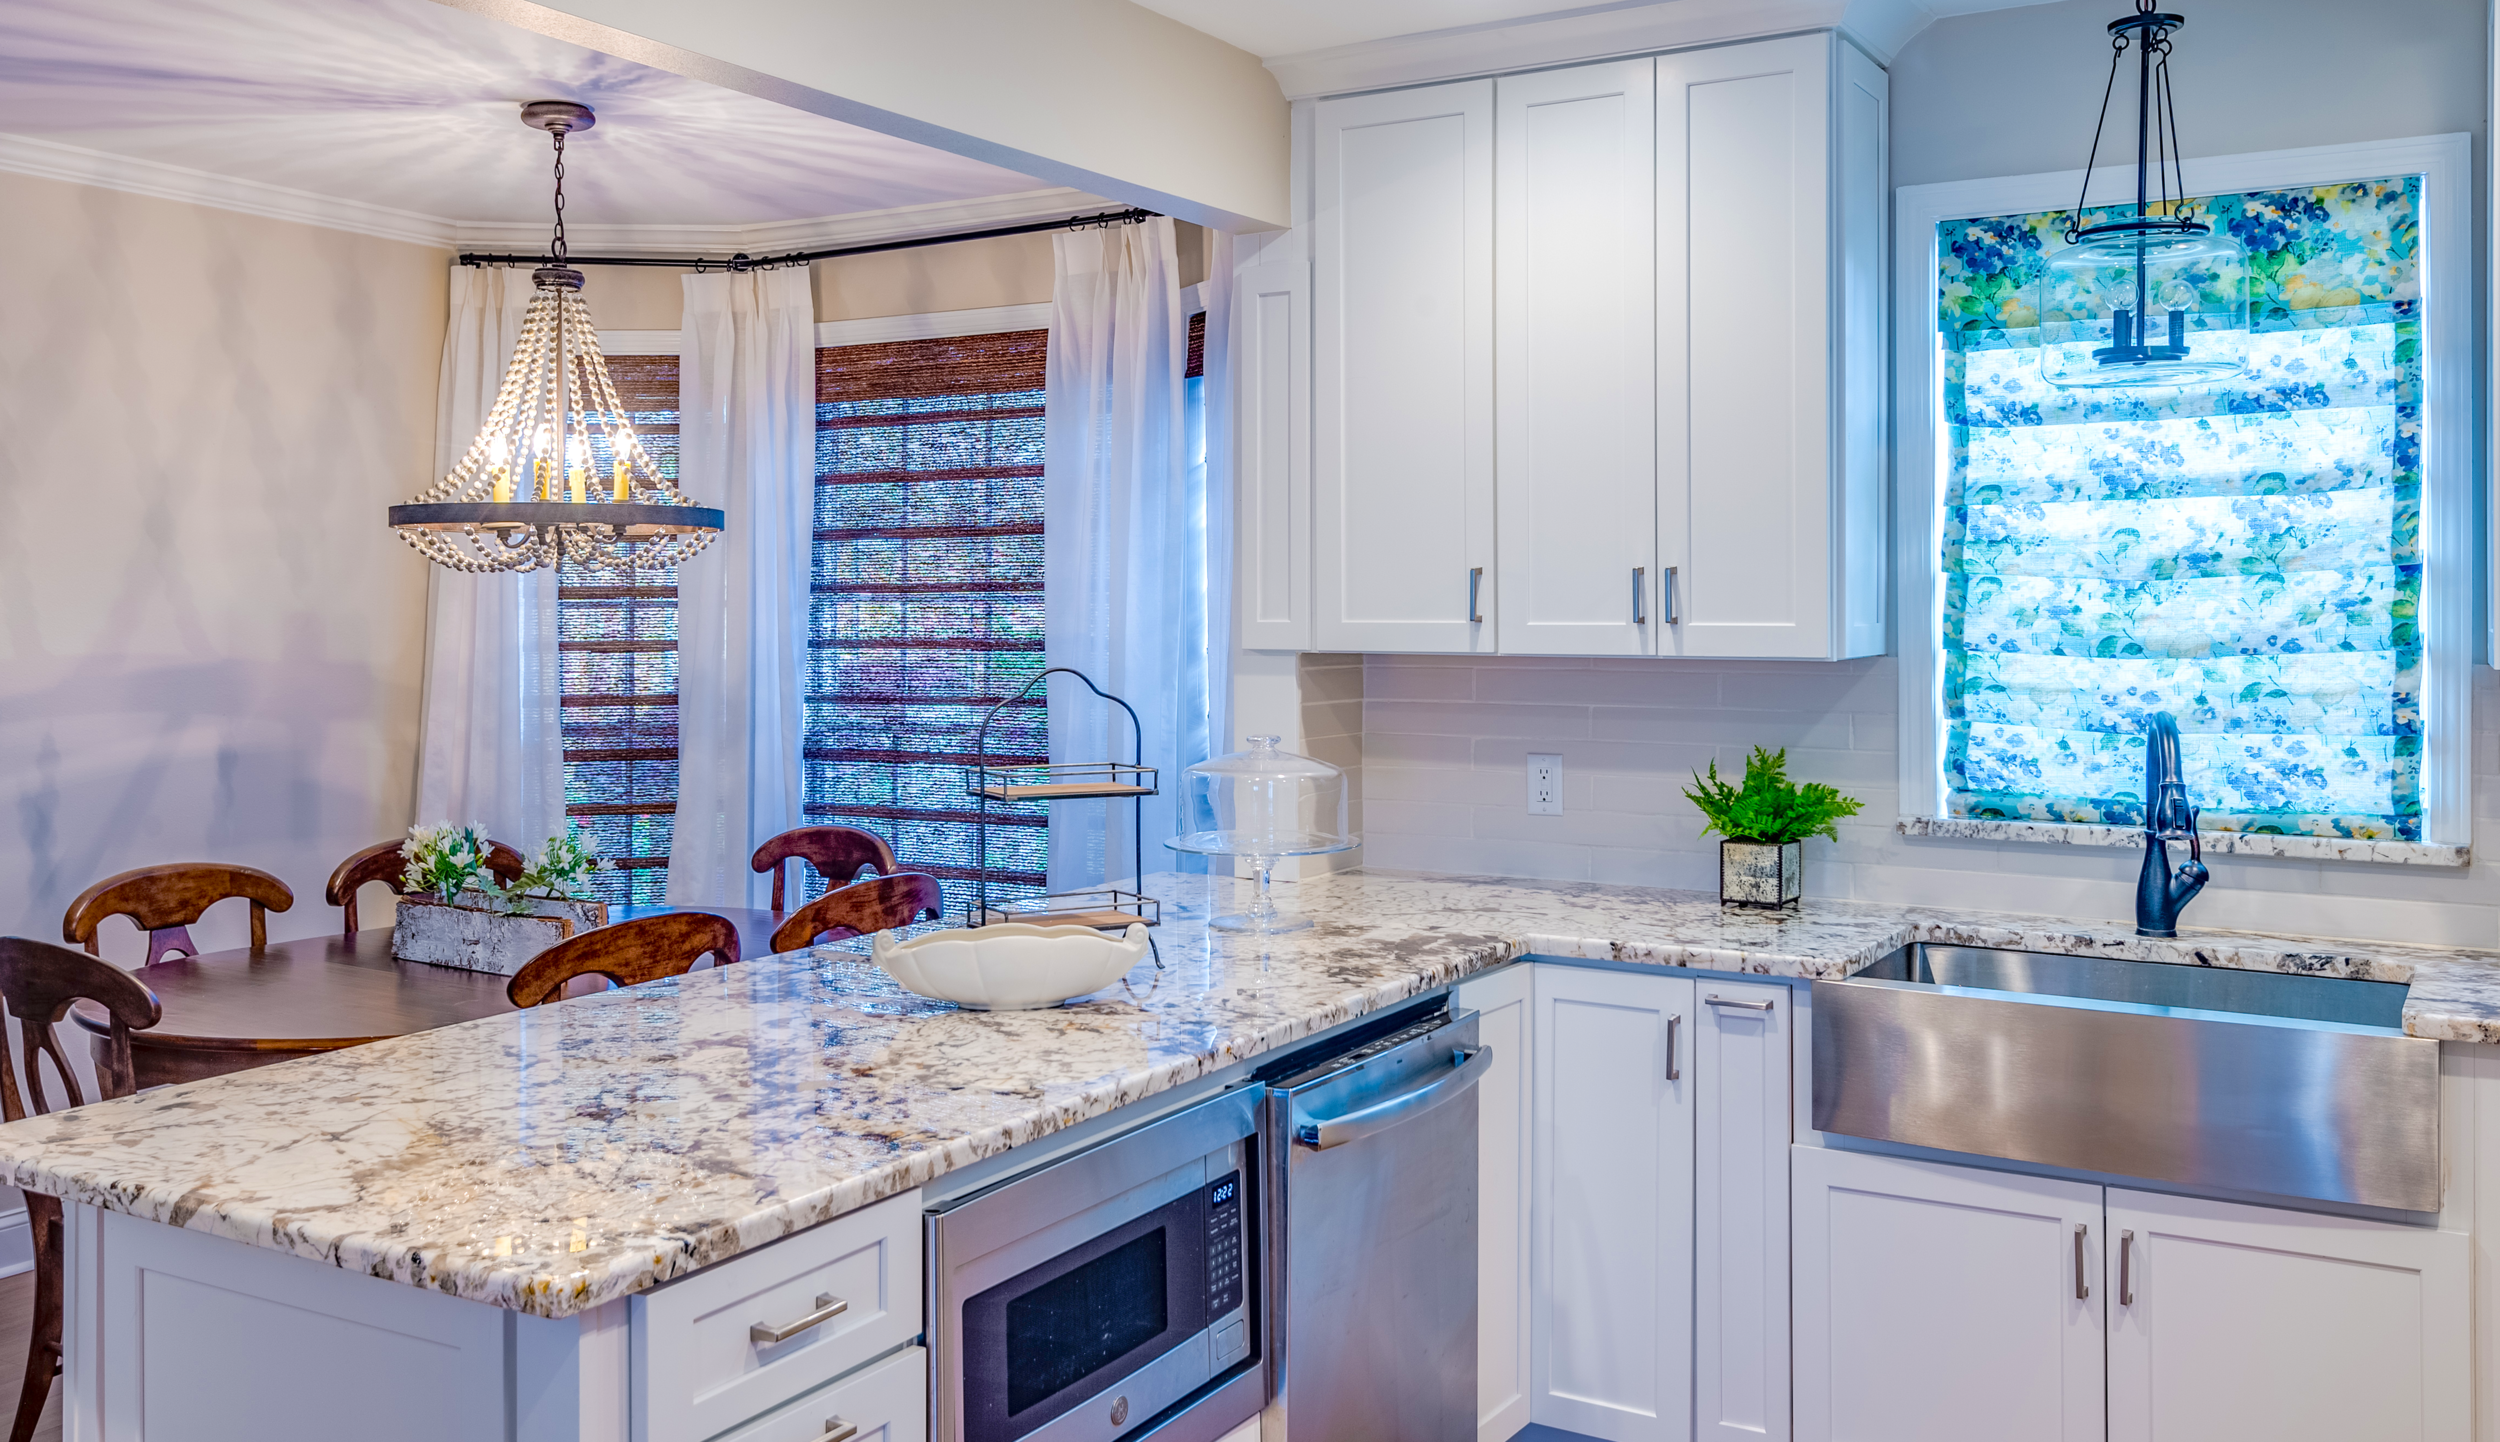 old metairie interior designer custom kitchens custom drapery new orleans